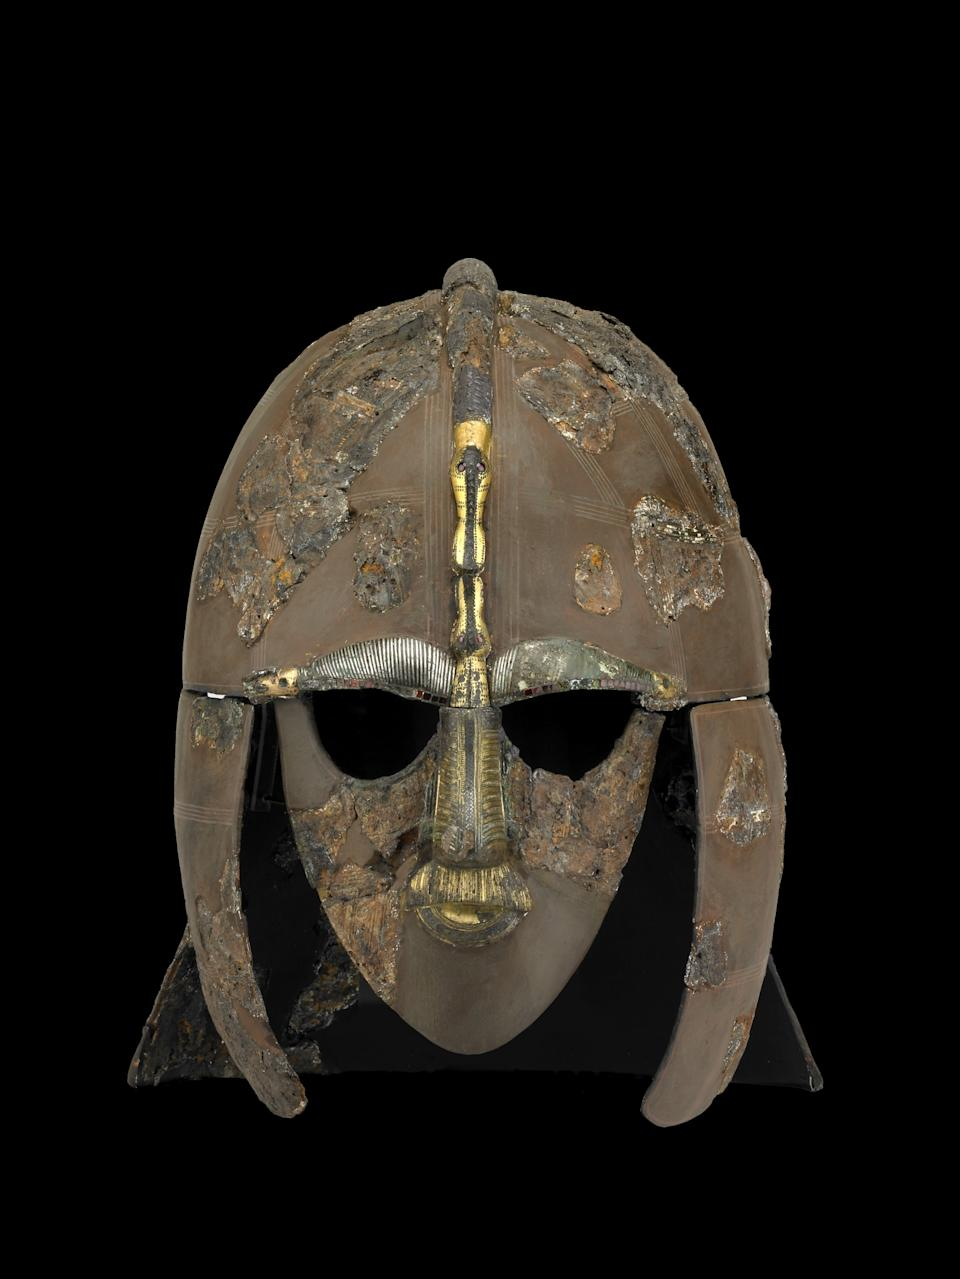 The helmet from Sutton Hoo is in the British Museum's online collection (British Museum/PA)